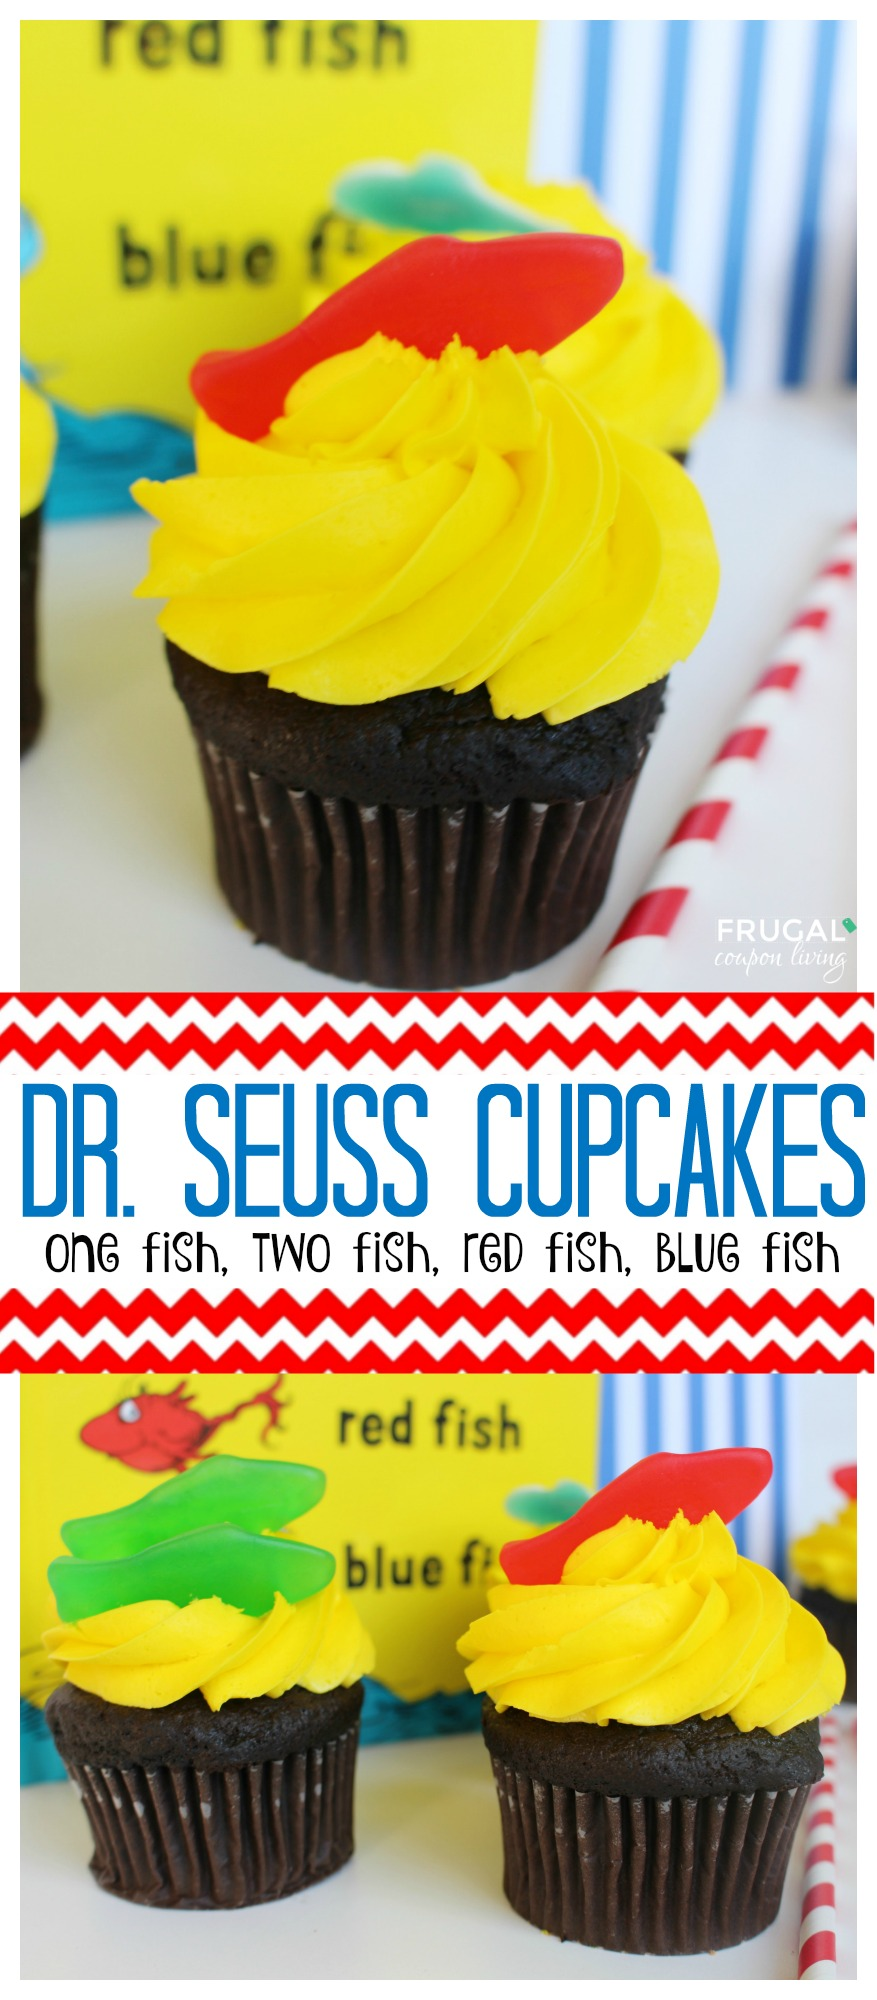 Dr-seuss-cupcakes-one-fish-two-fish-red-fish-blue-fish-frugal-coupon-living